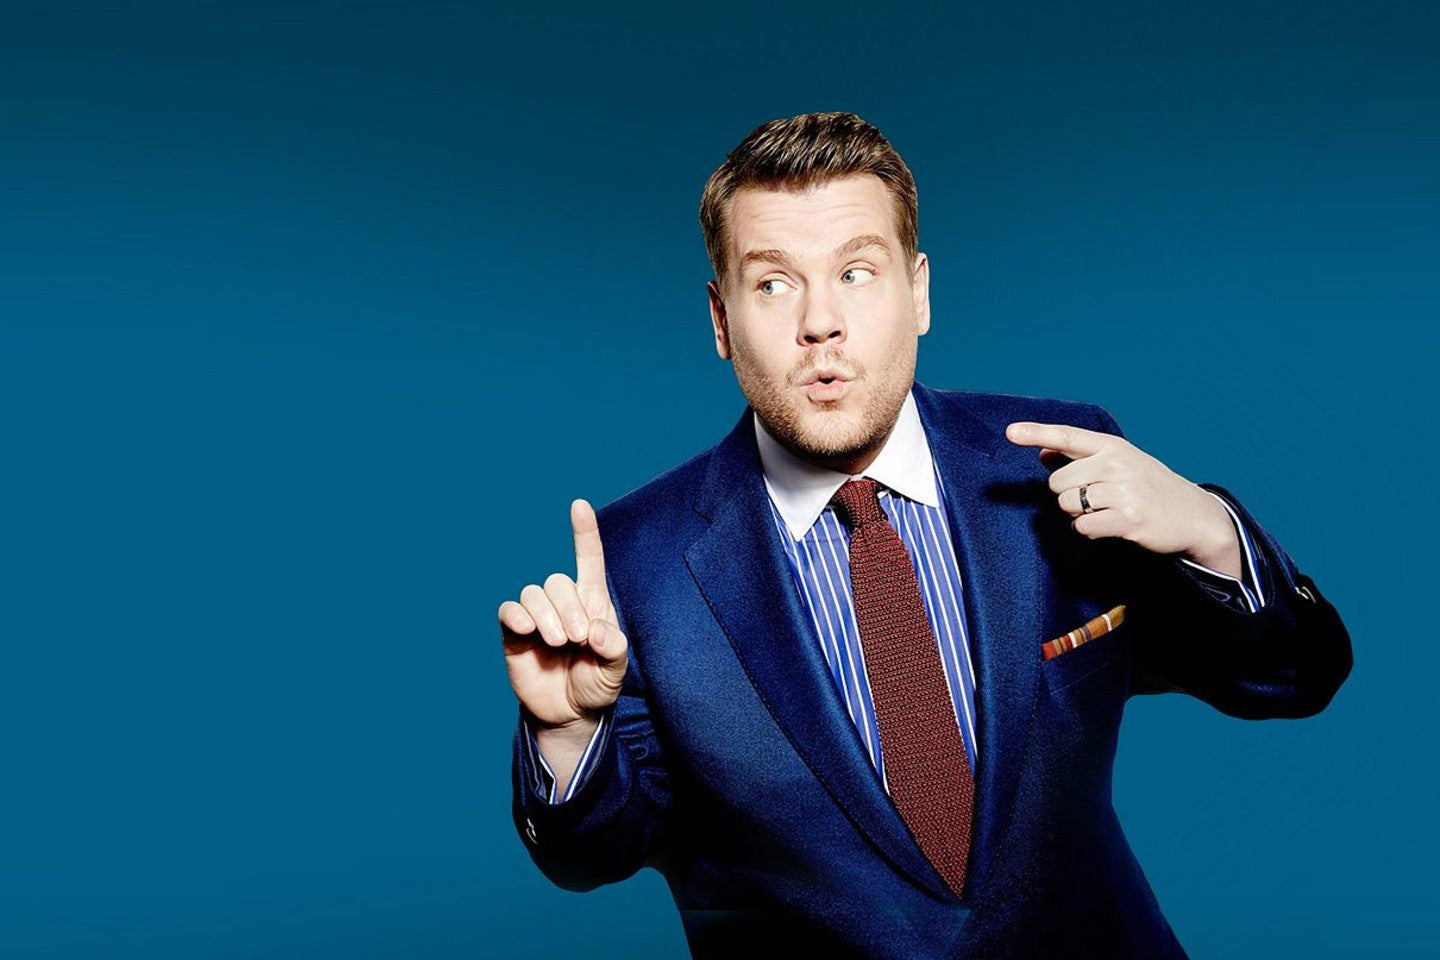 About The Late Late Show with James Corden